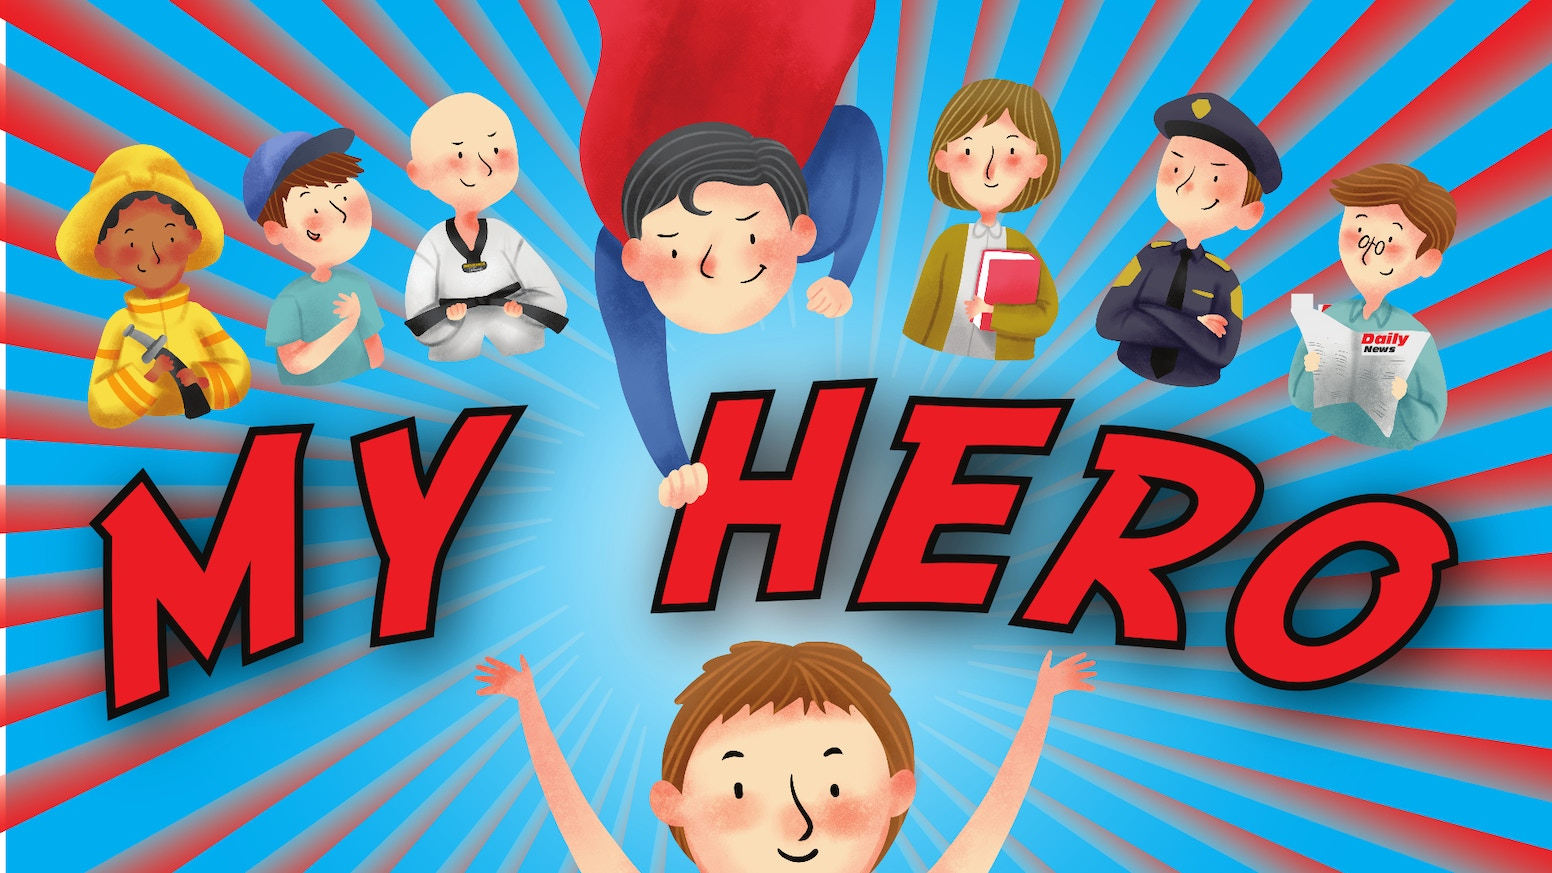 'My Hero' Children's Picture Book By Alistair Lawson